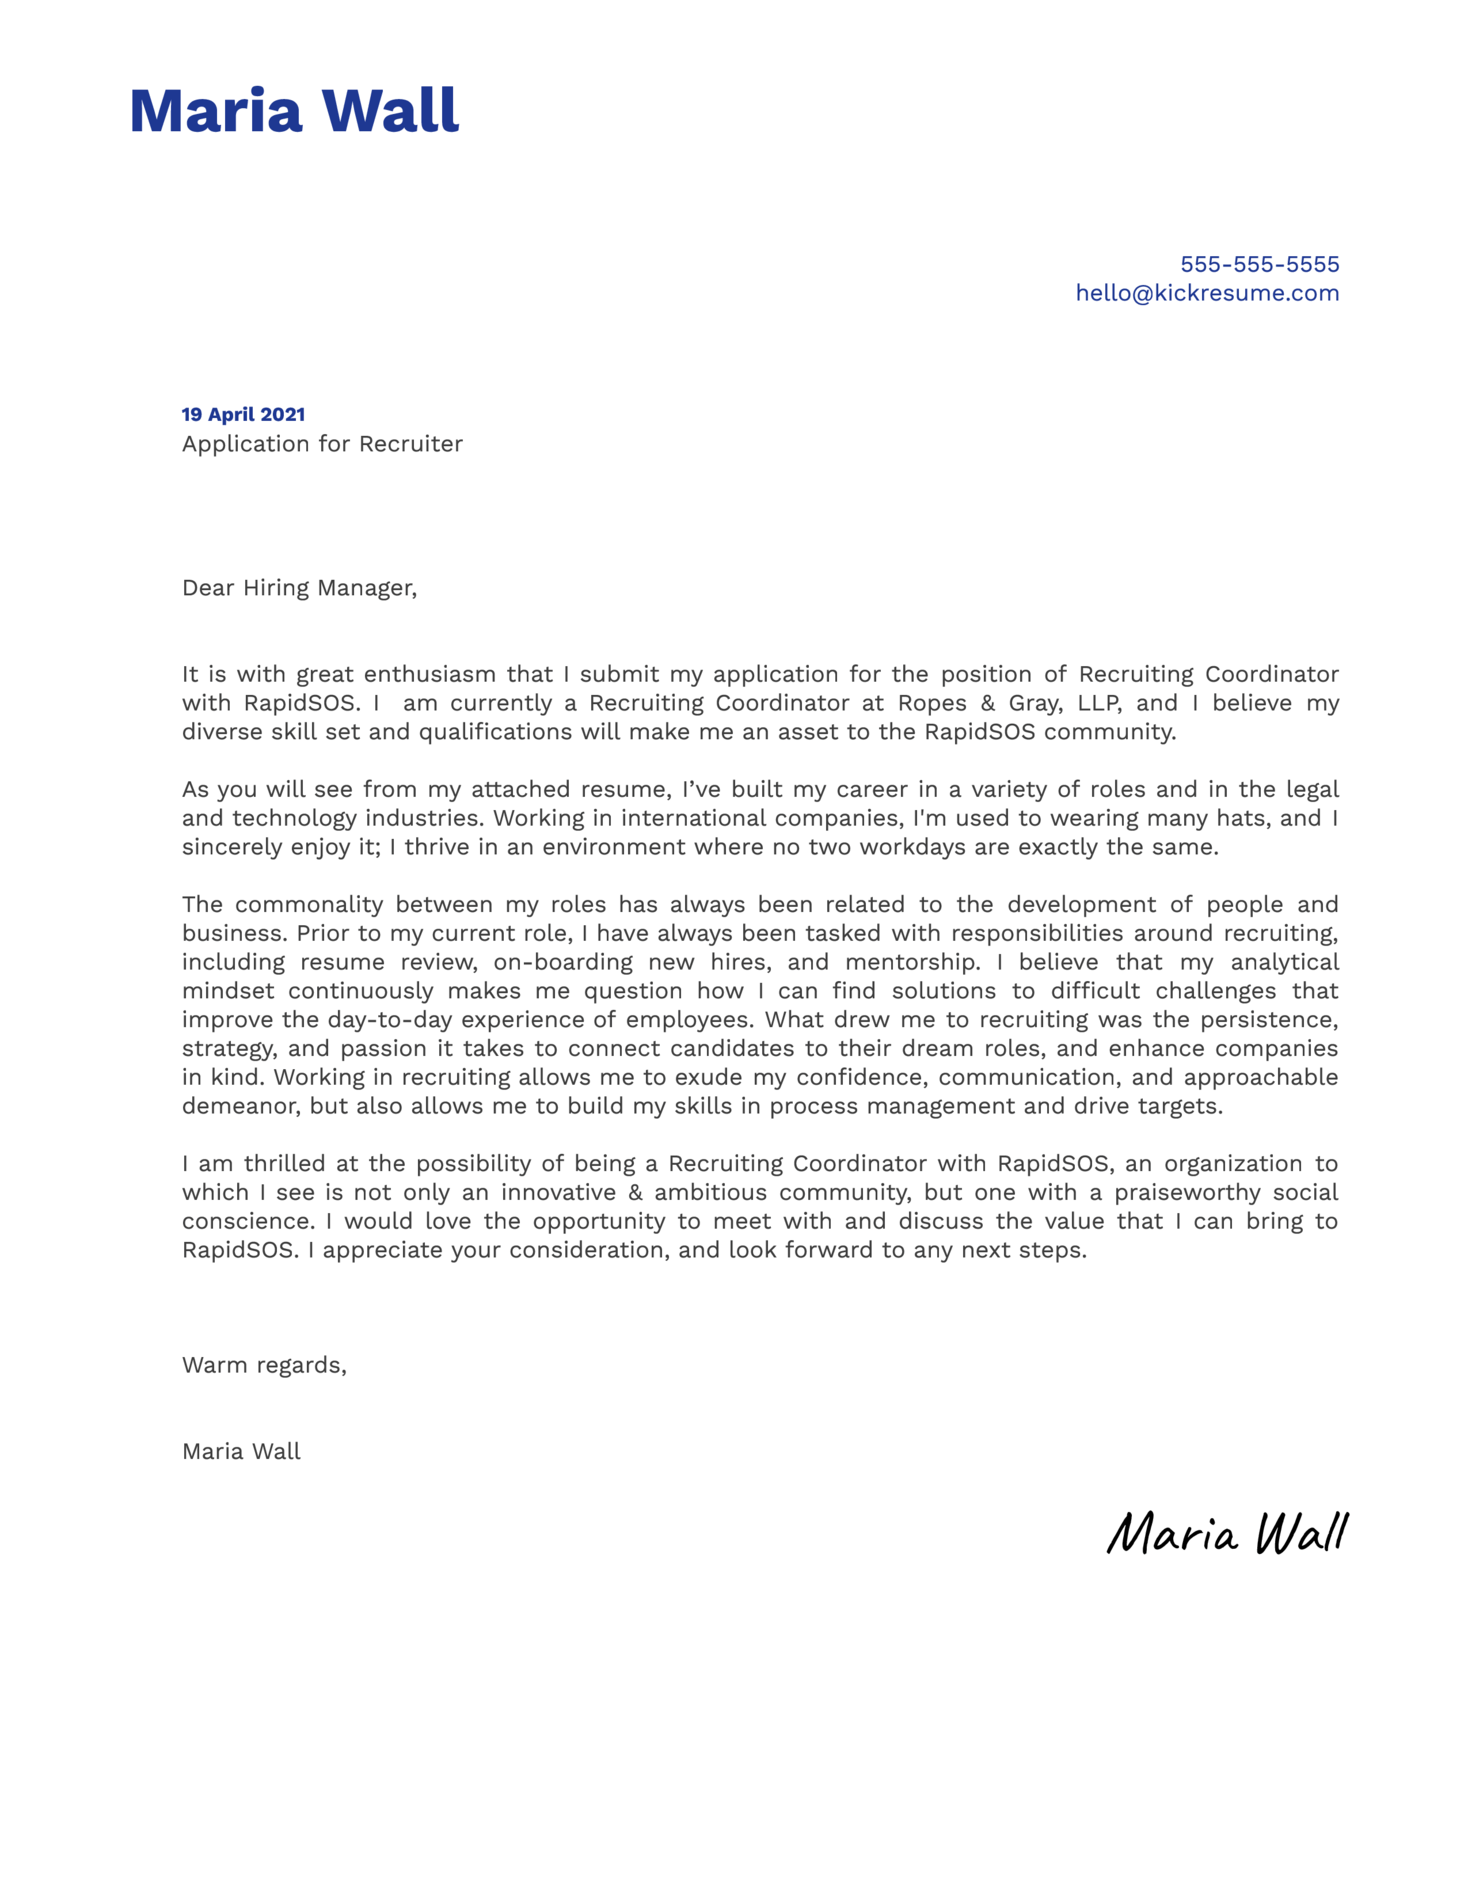 Recruiter at RapidSOS Cover Letter Example